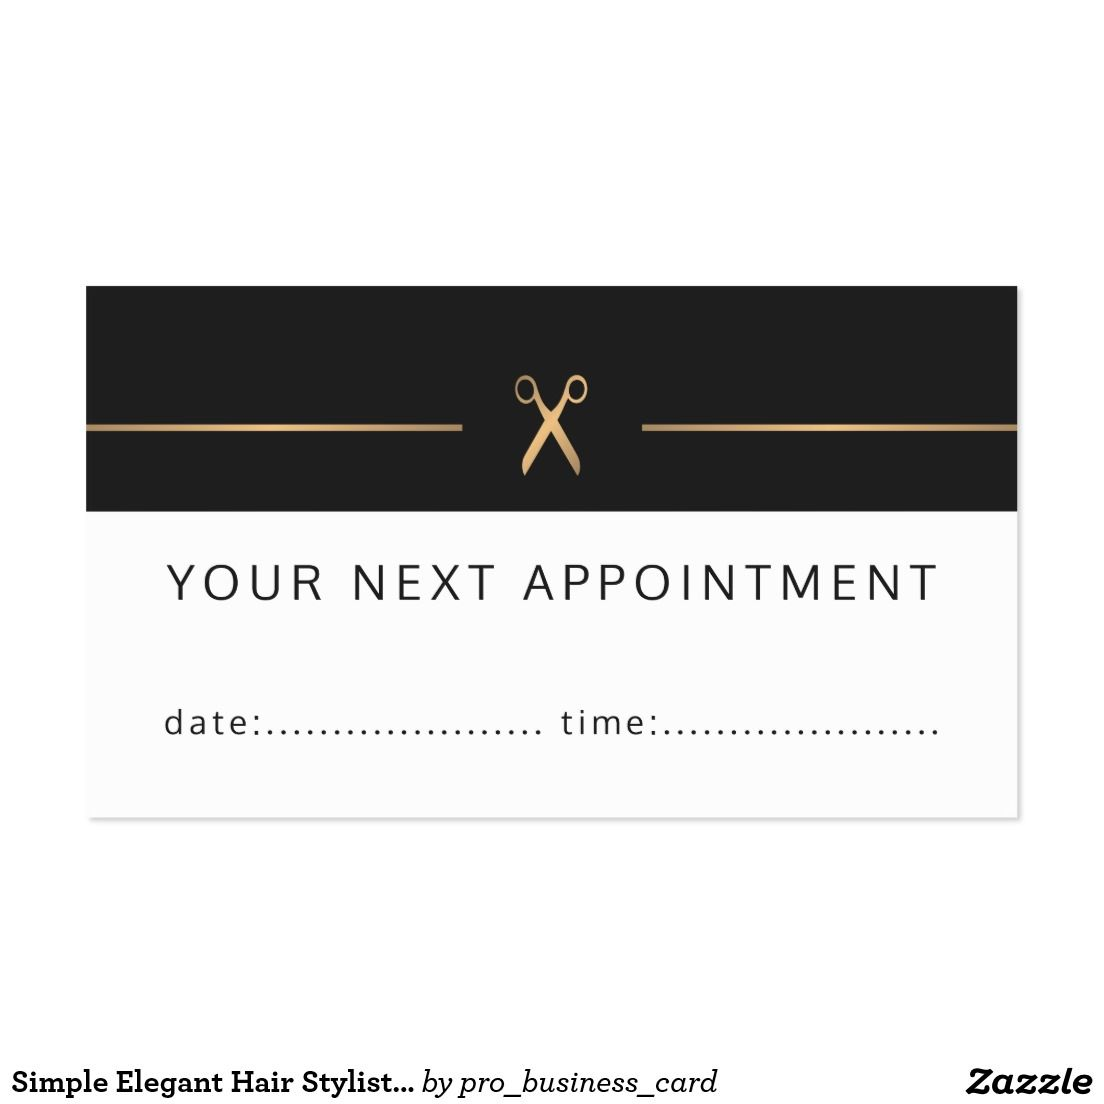 Simple Elegant Hair Stylist Appointment Card | Appointment Cards ...